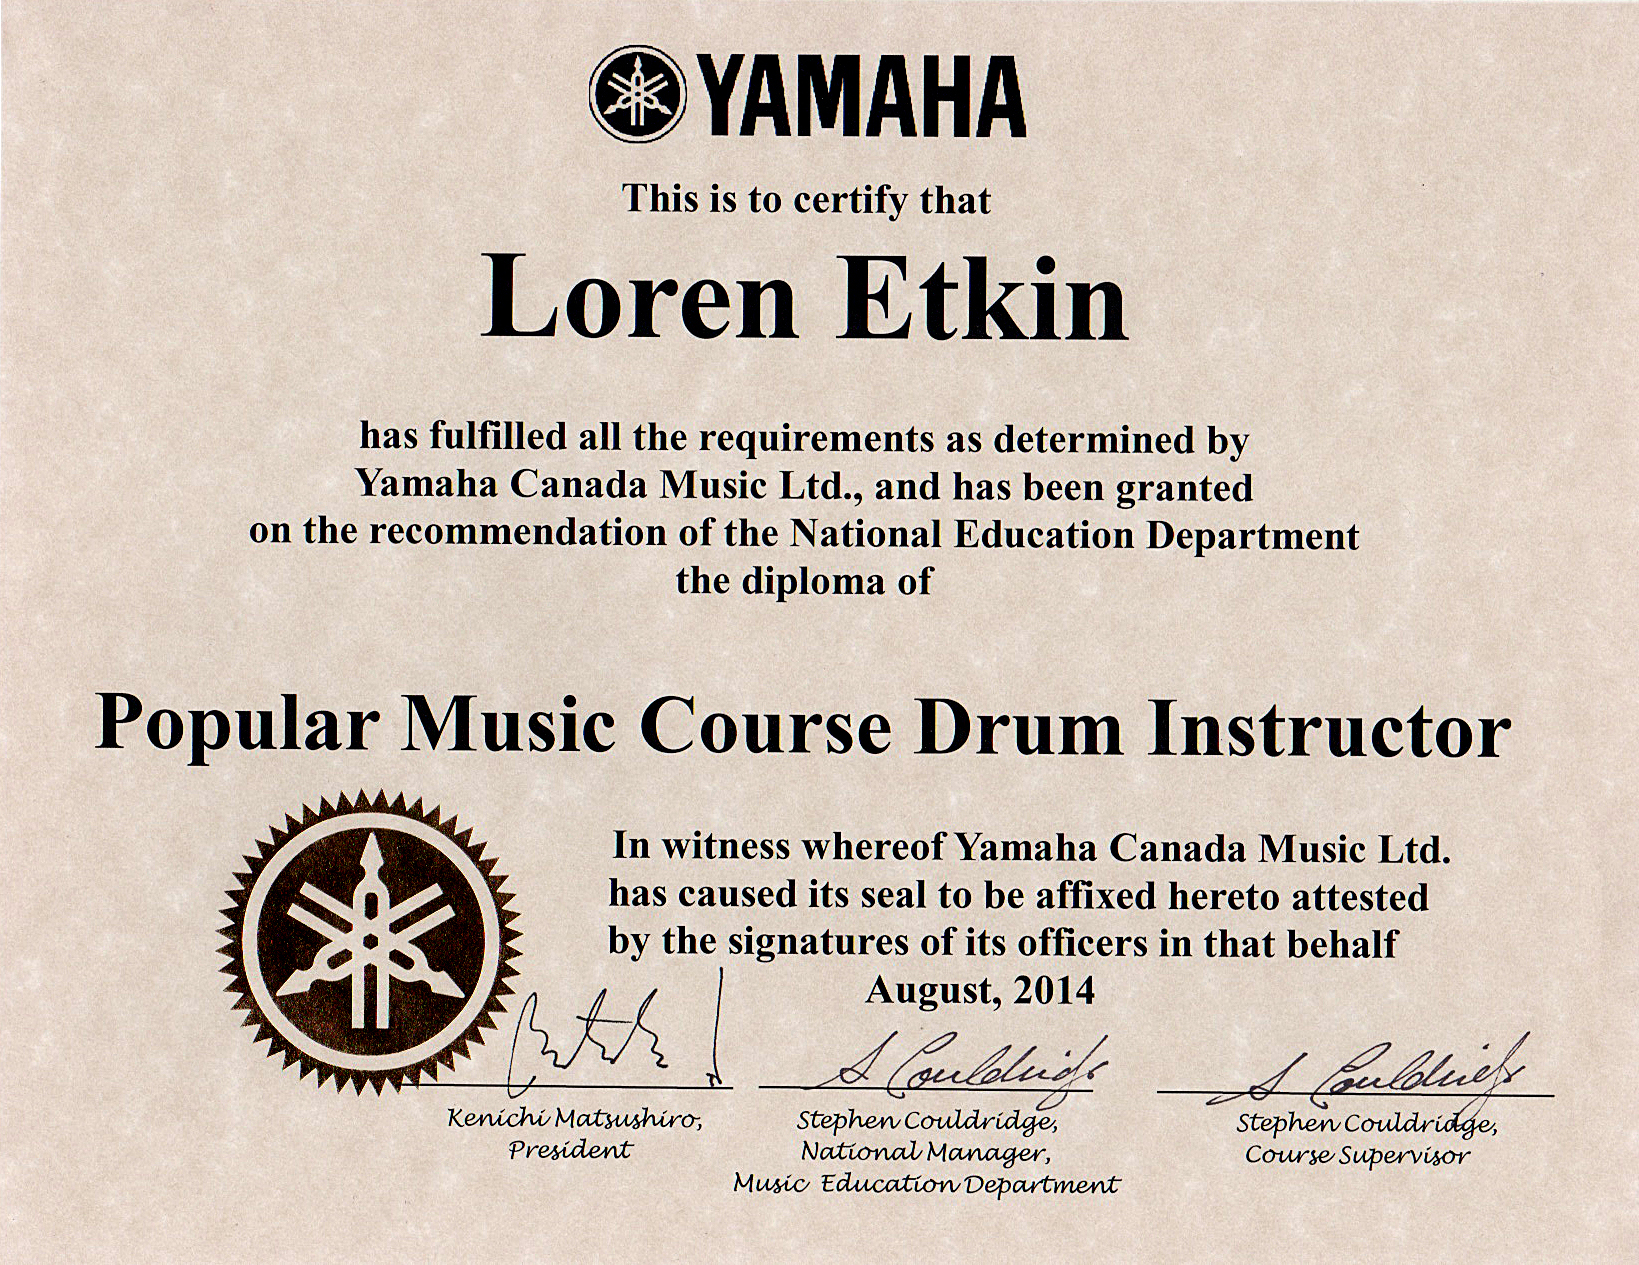 Drum lessons loren etkin vancouver drum lessons for Yamaha music school locations